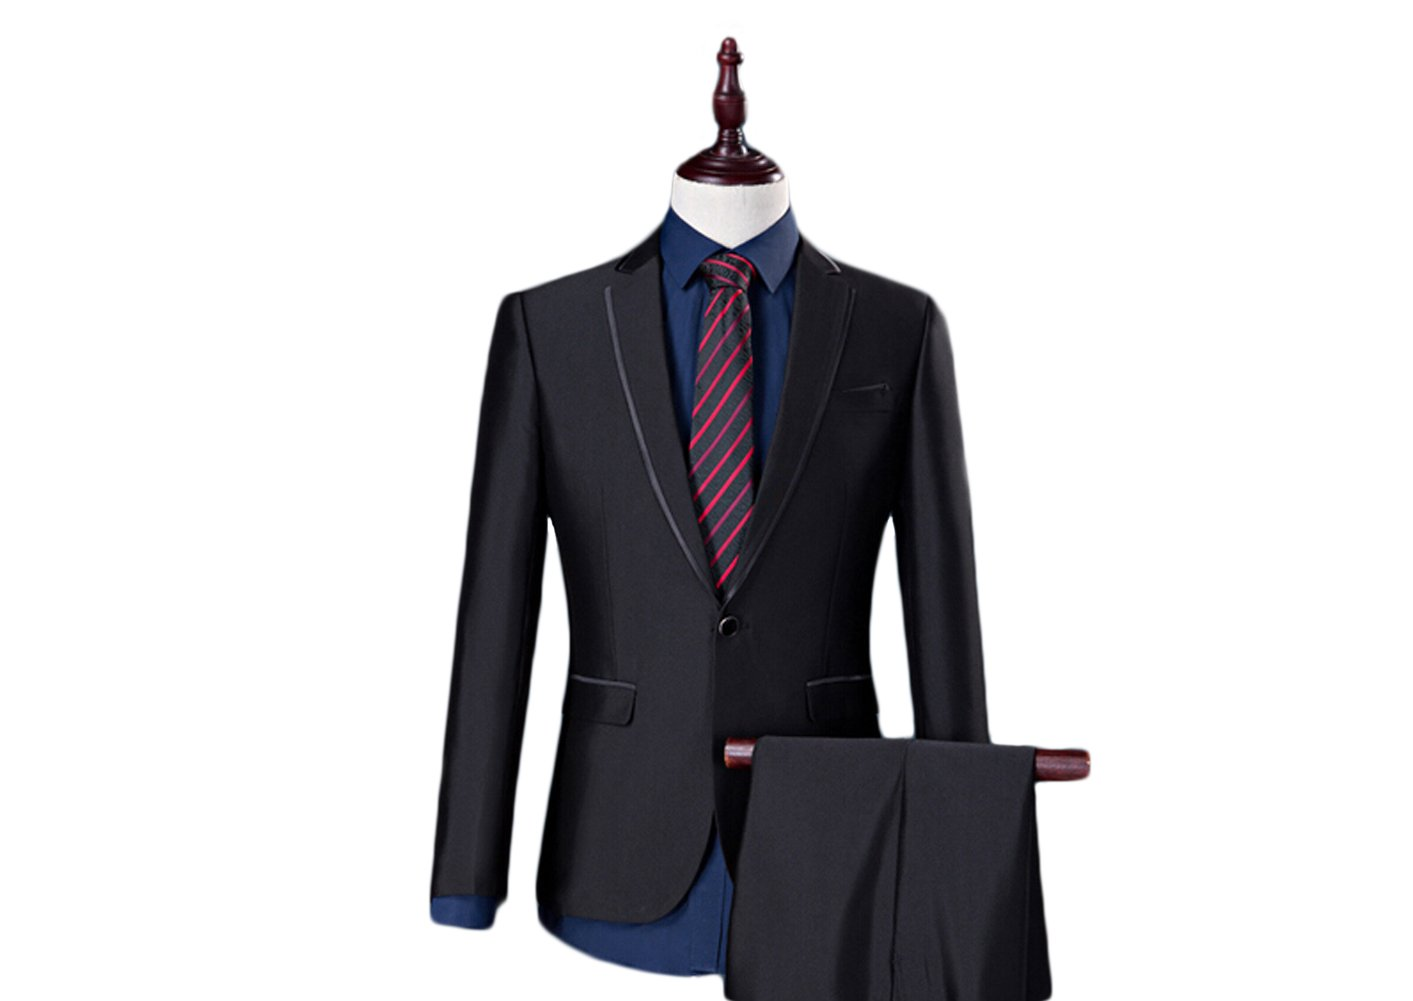 Love Dress Men's Thin 2-Piece Wedding Men Suit (Jacket+Pants) 5XL